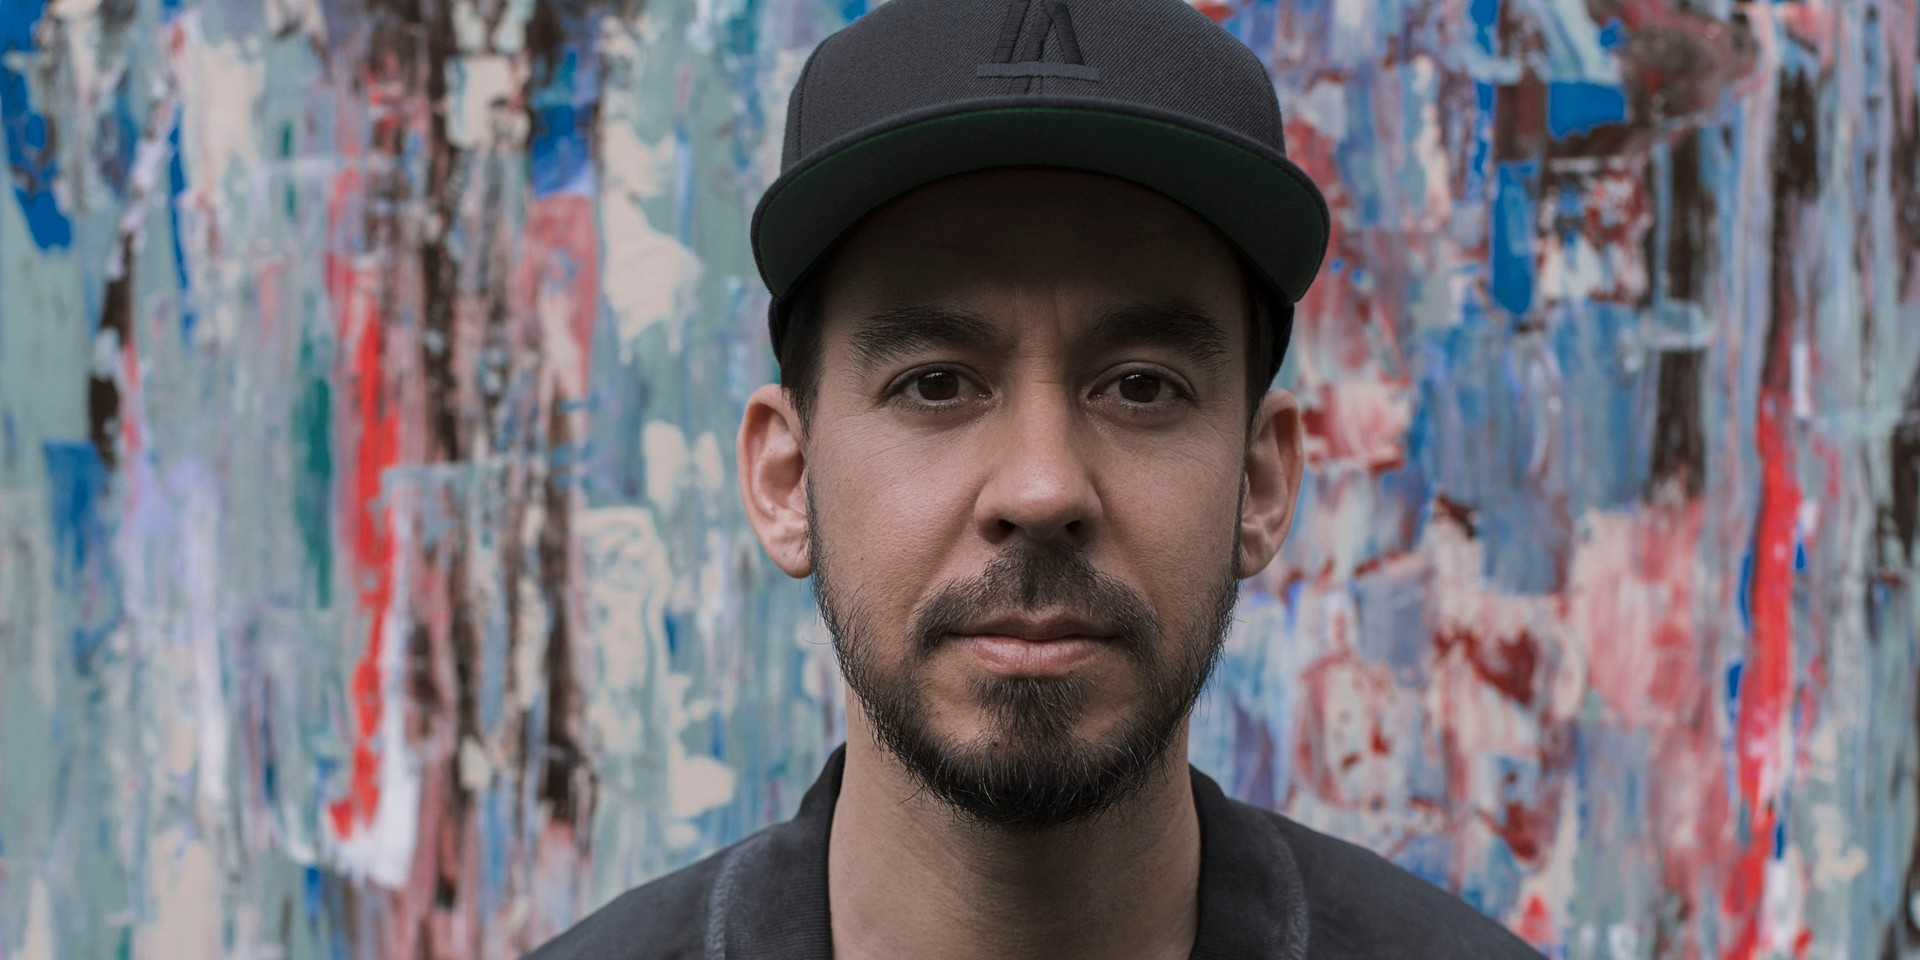 Mike Shinoda wants to produce your track live on Twitch